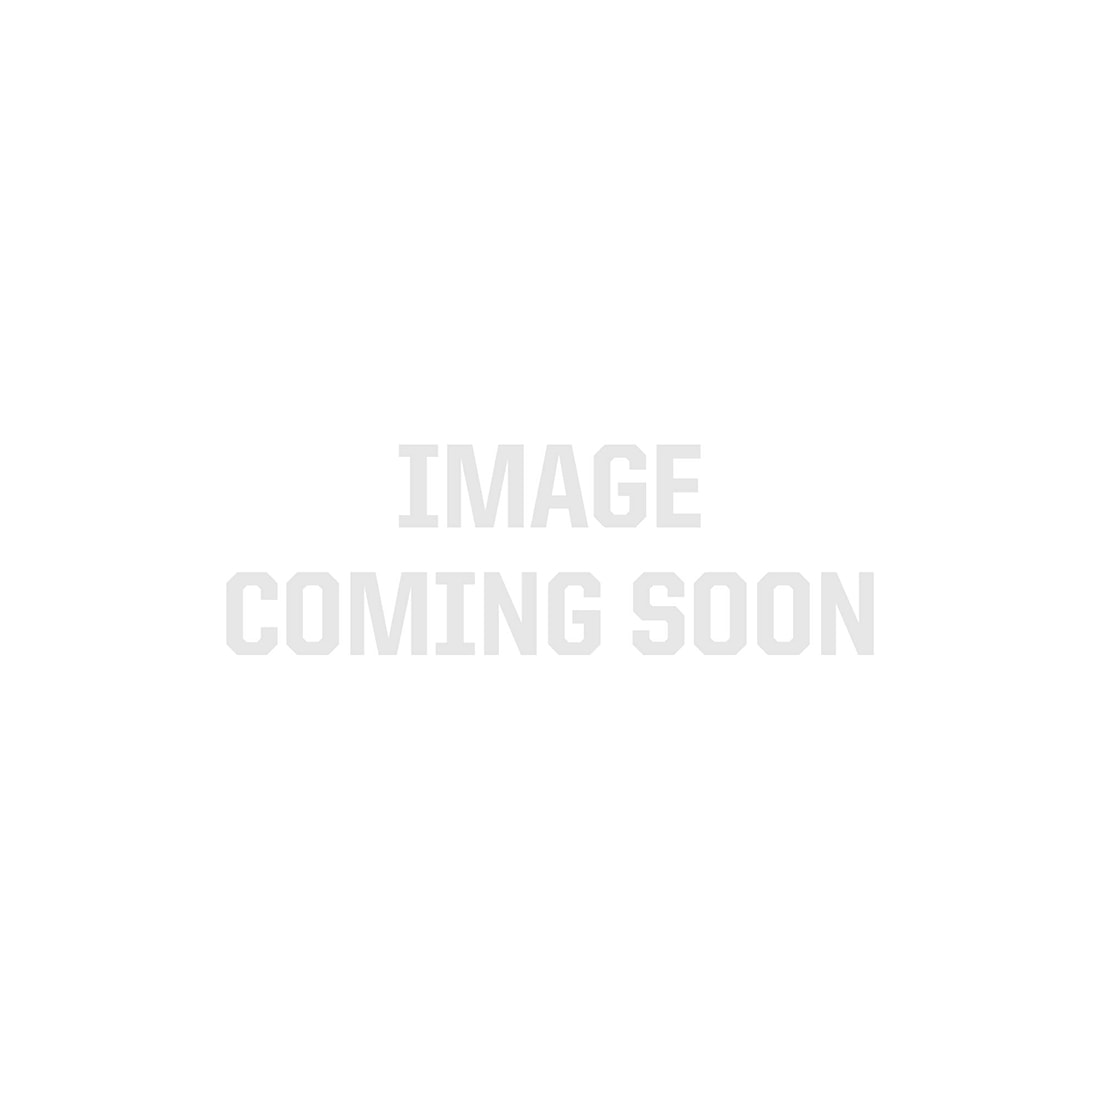 Lutron PJ-2B-GWH-T01 Pico wireless control, 434 MHz, 2-button On/Off with light text engraving